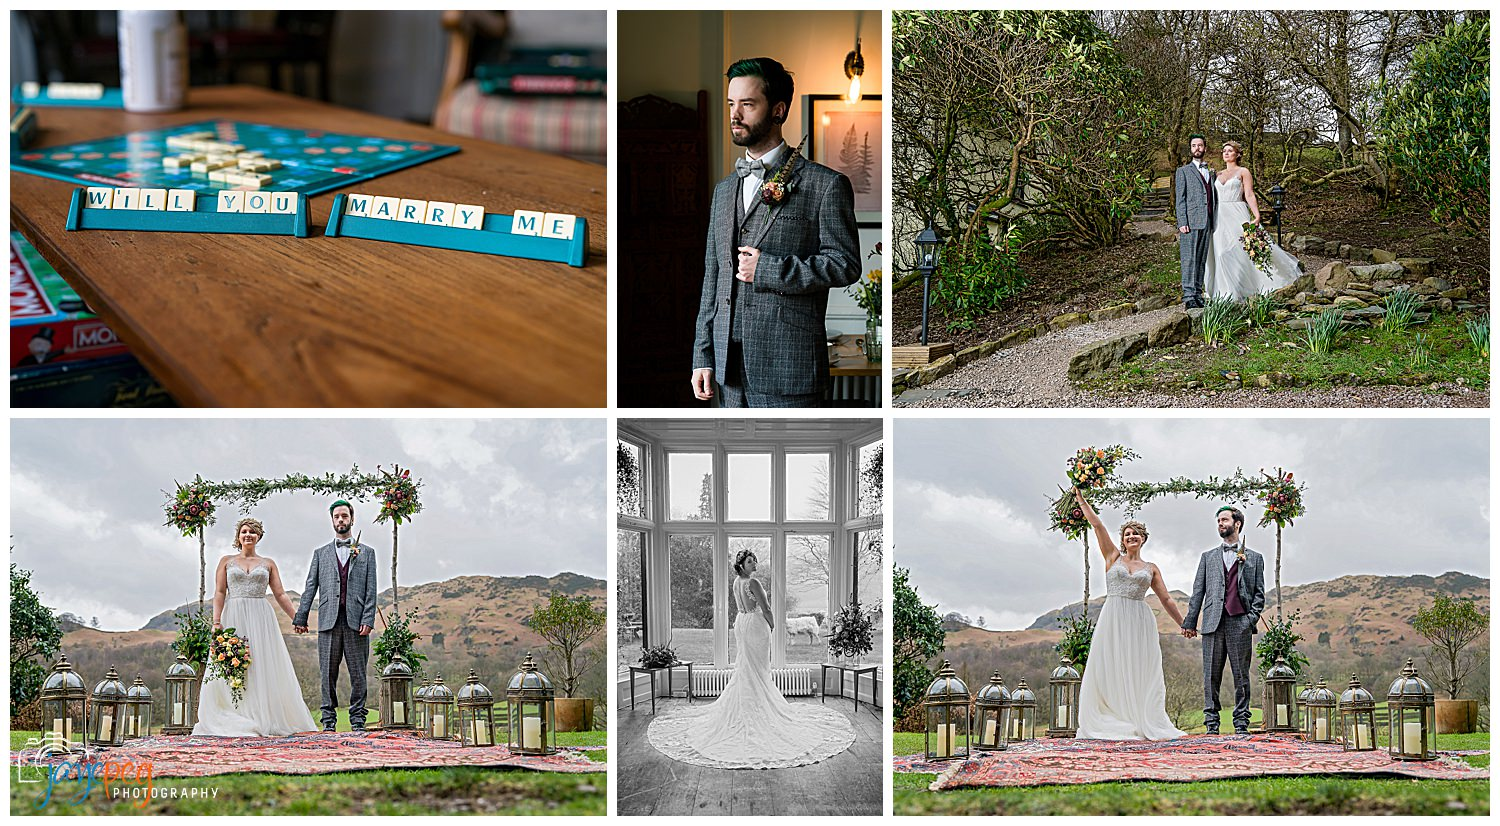 A collage of photographs from a wedding themed photoshoot